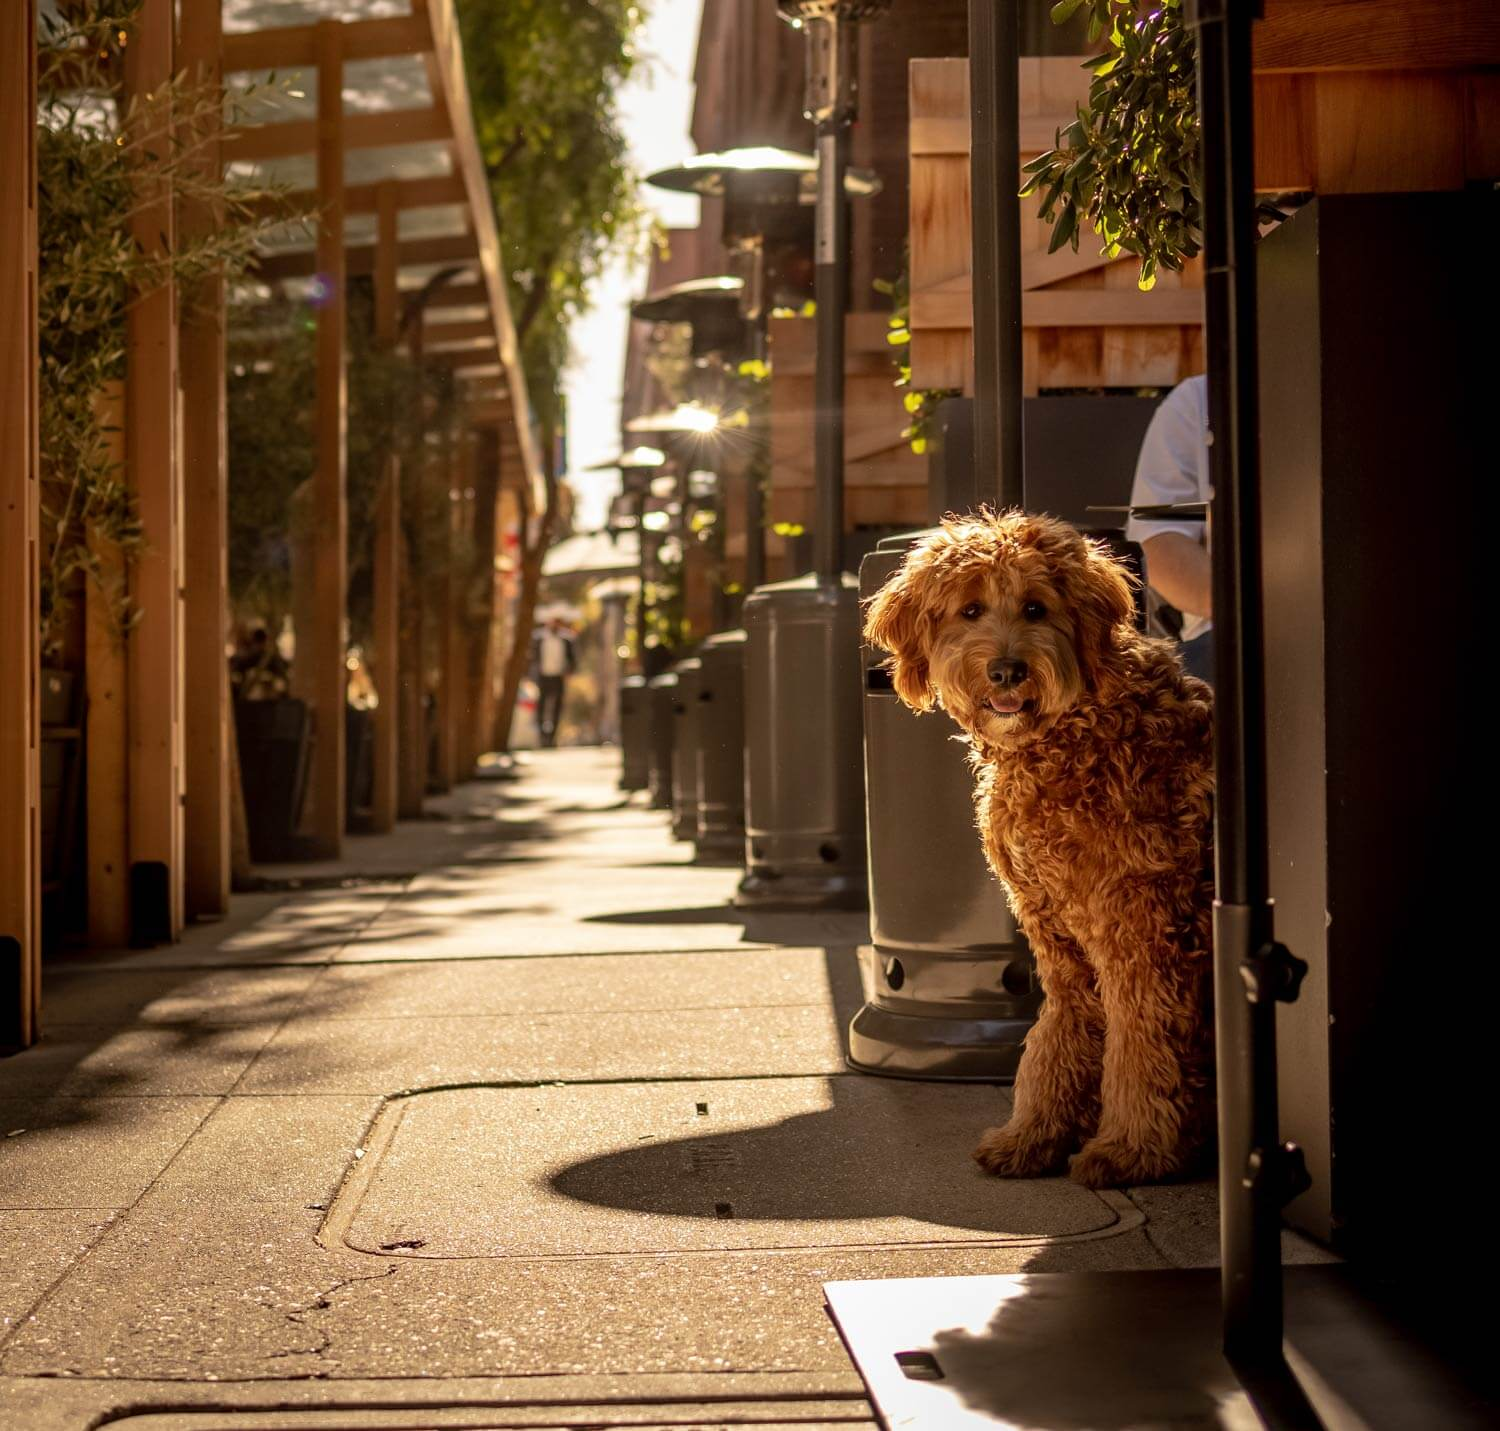 A dog sitting in the outdoor dining area of Cotogna